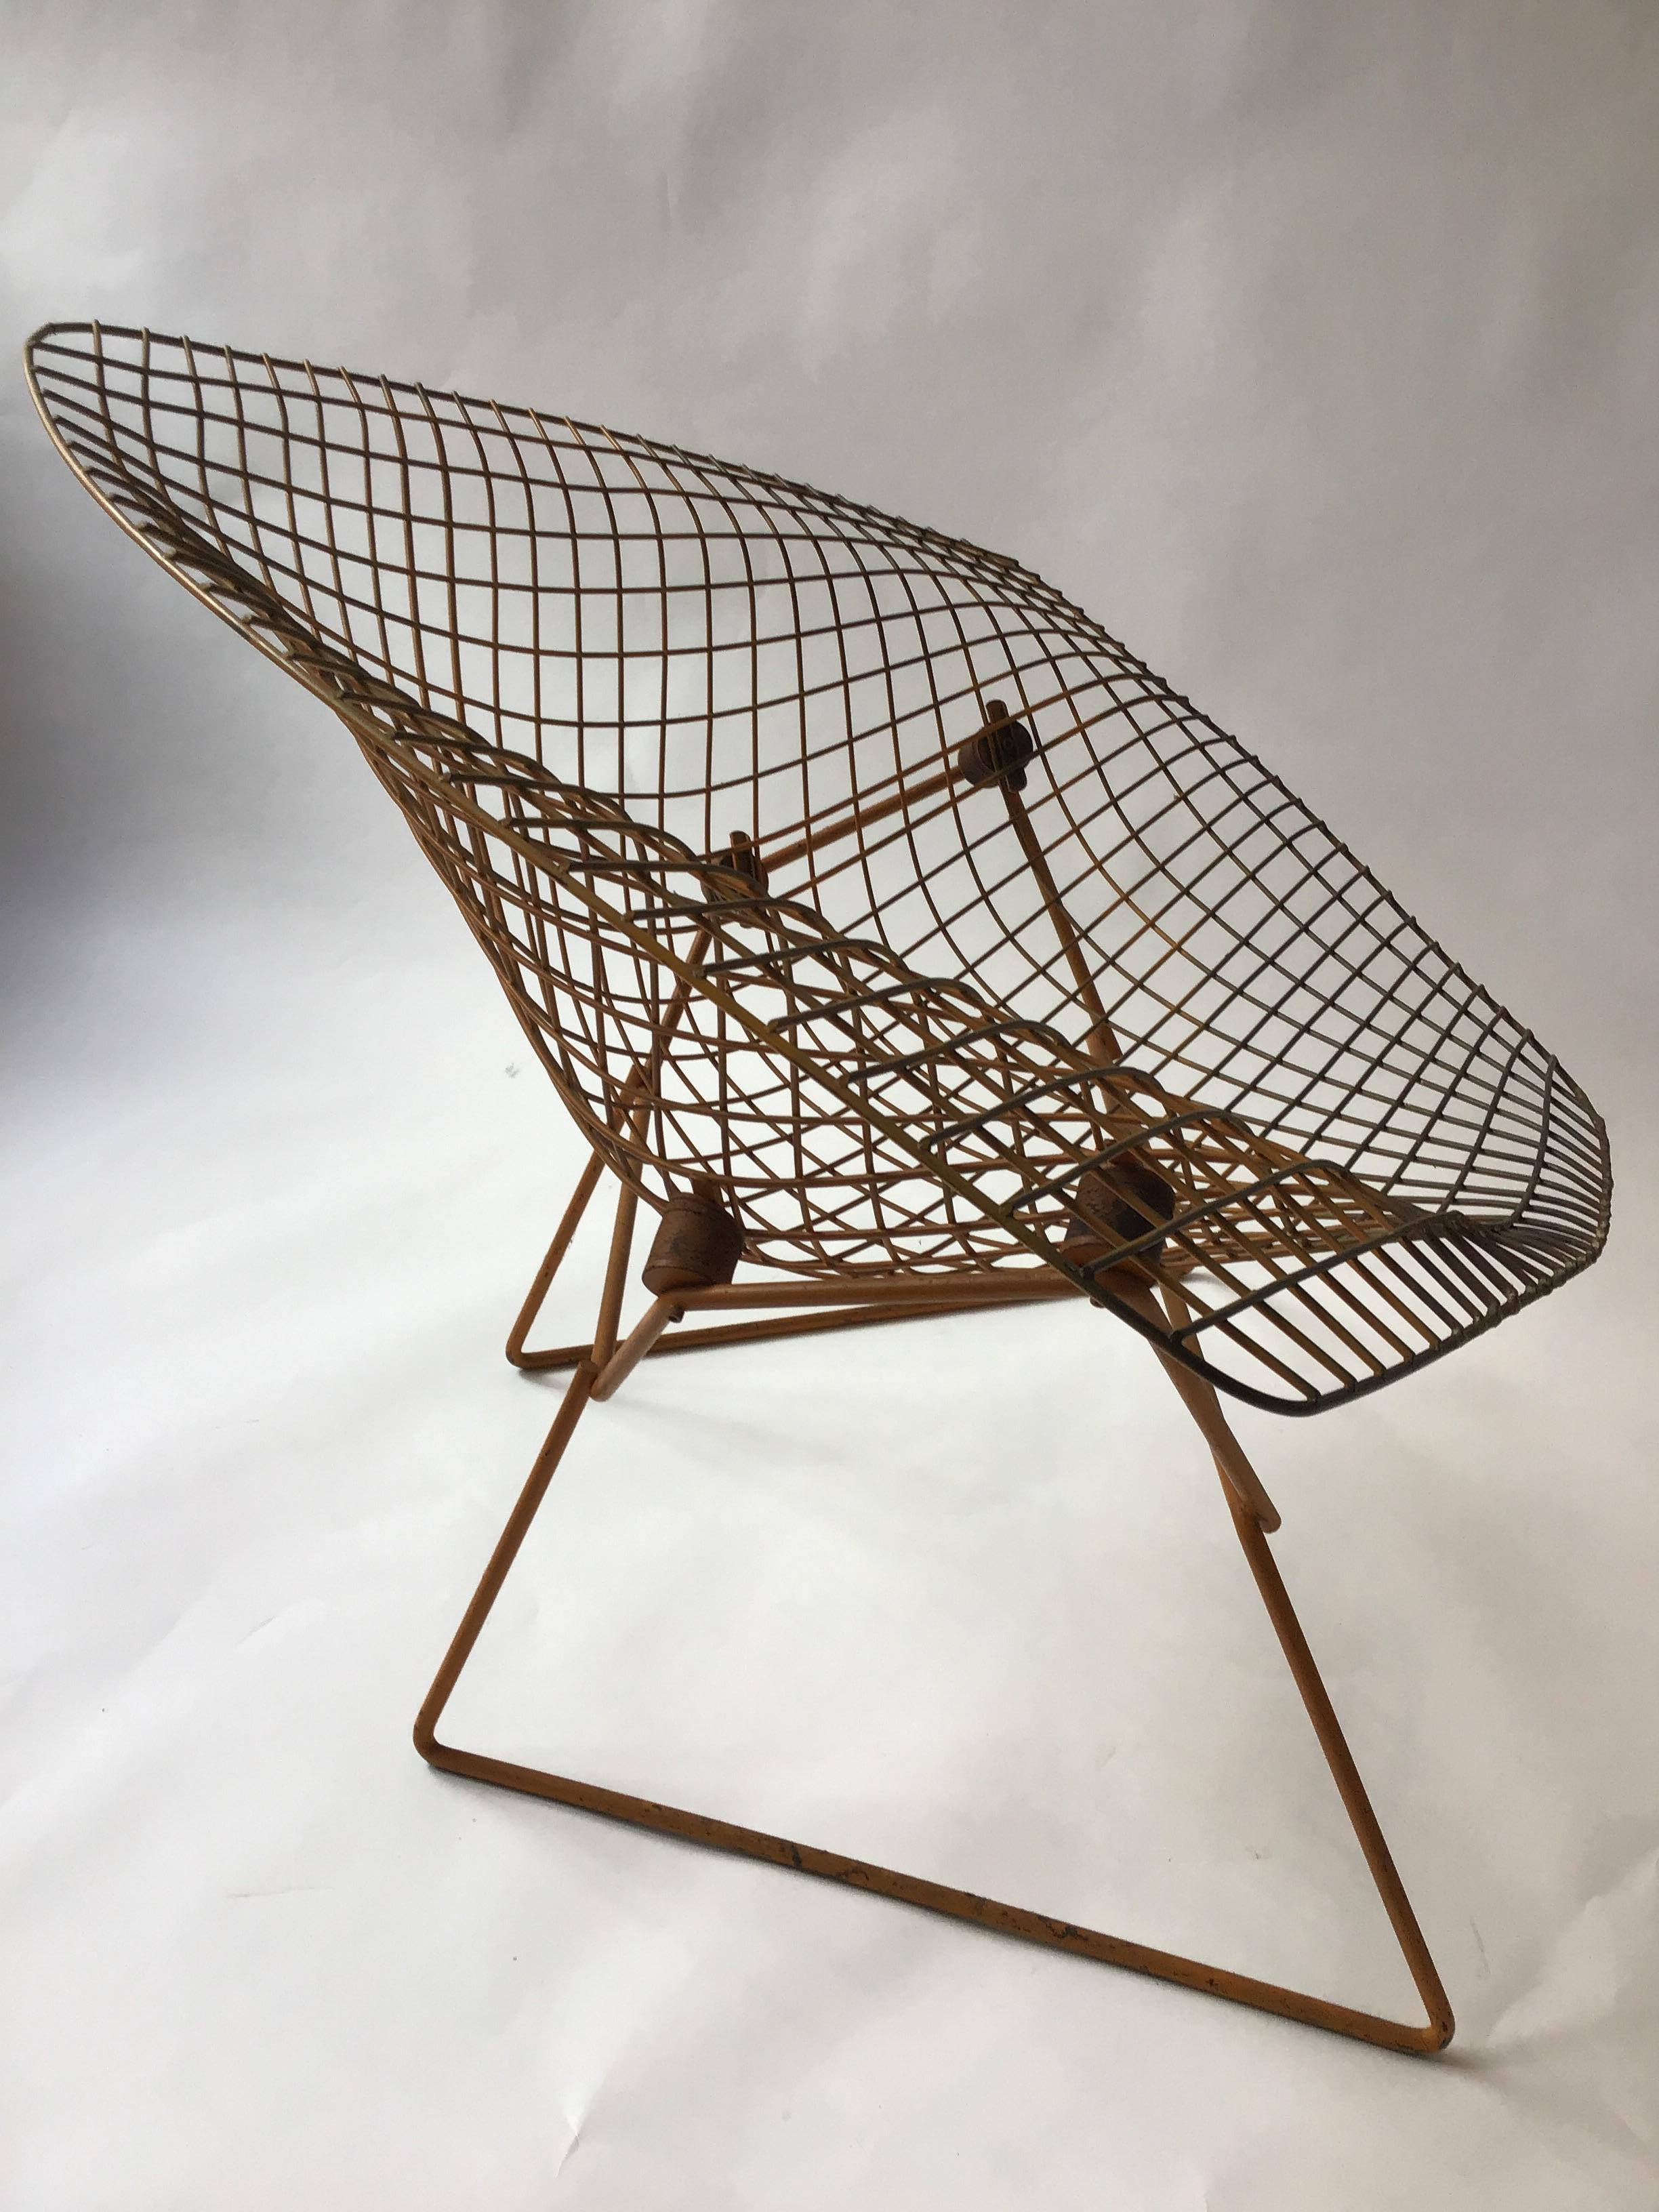 Diamond Chair Knoll Knoll Bertoia 1960s Wide Diamond Chair For Sale At 1stdibs